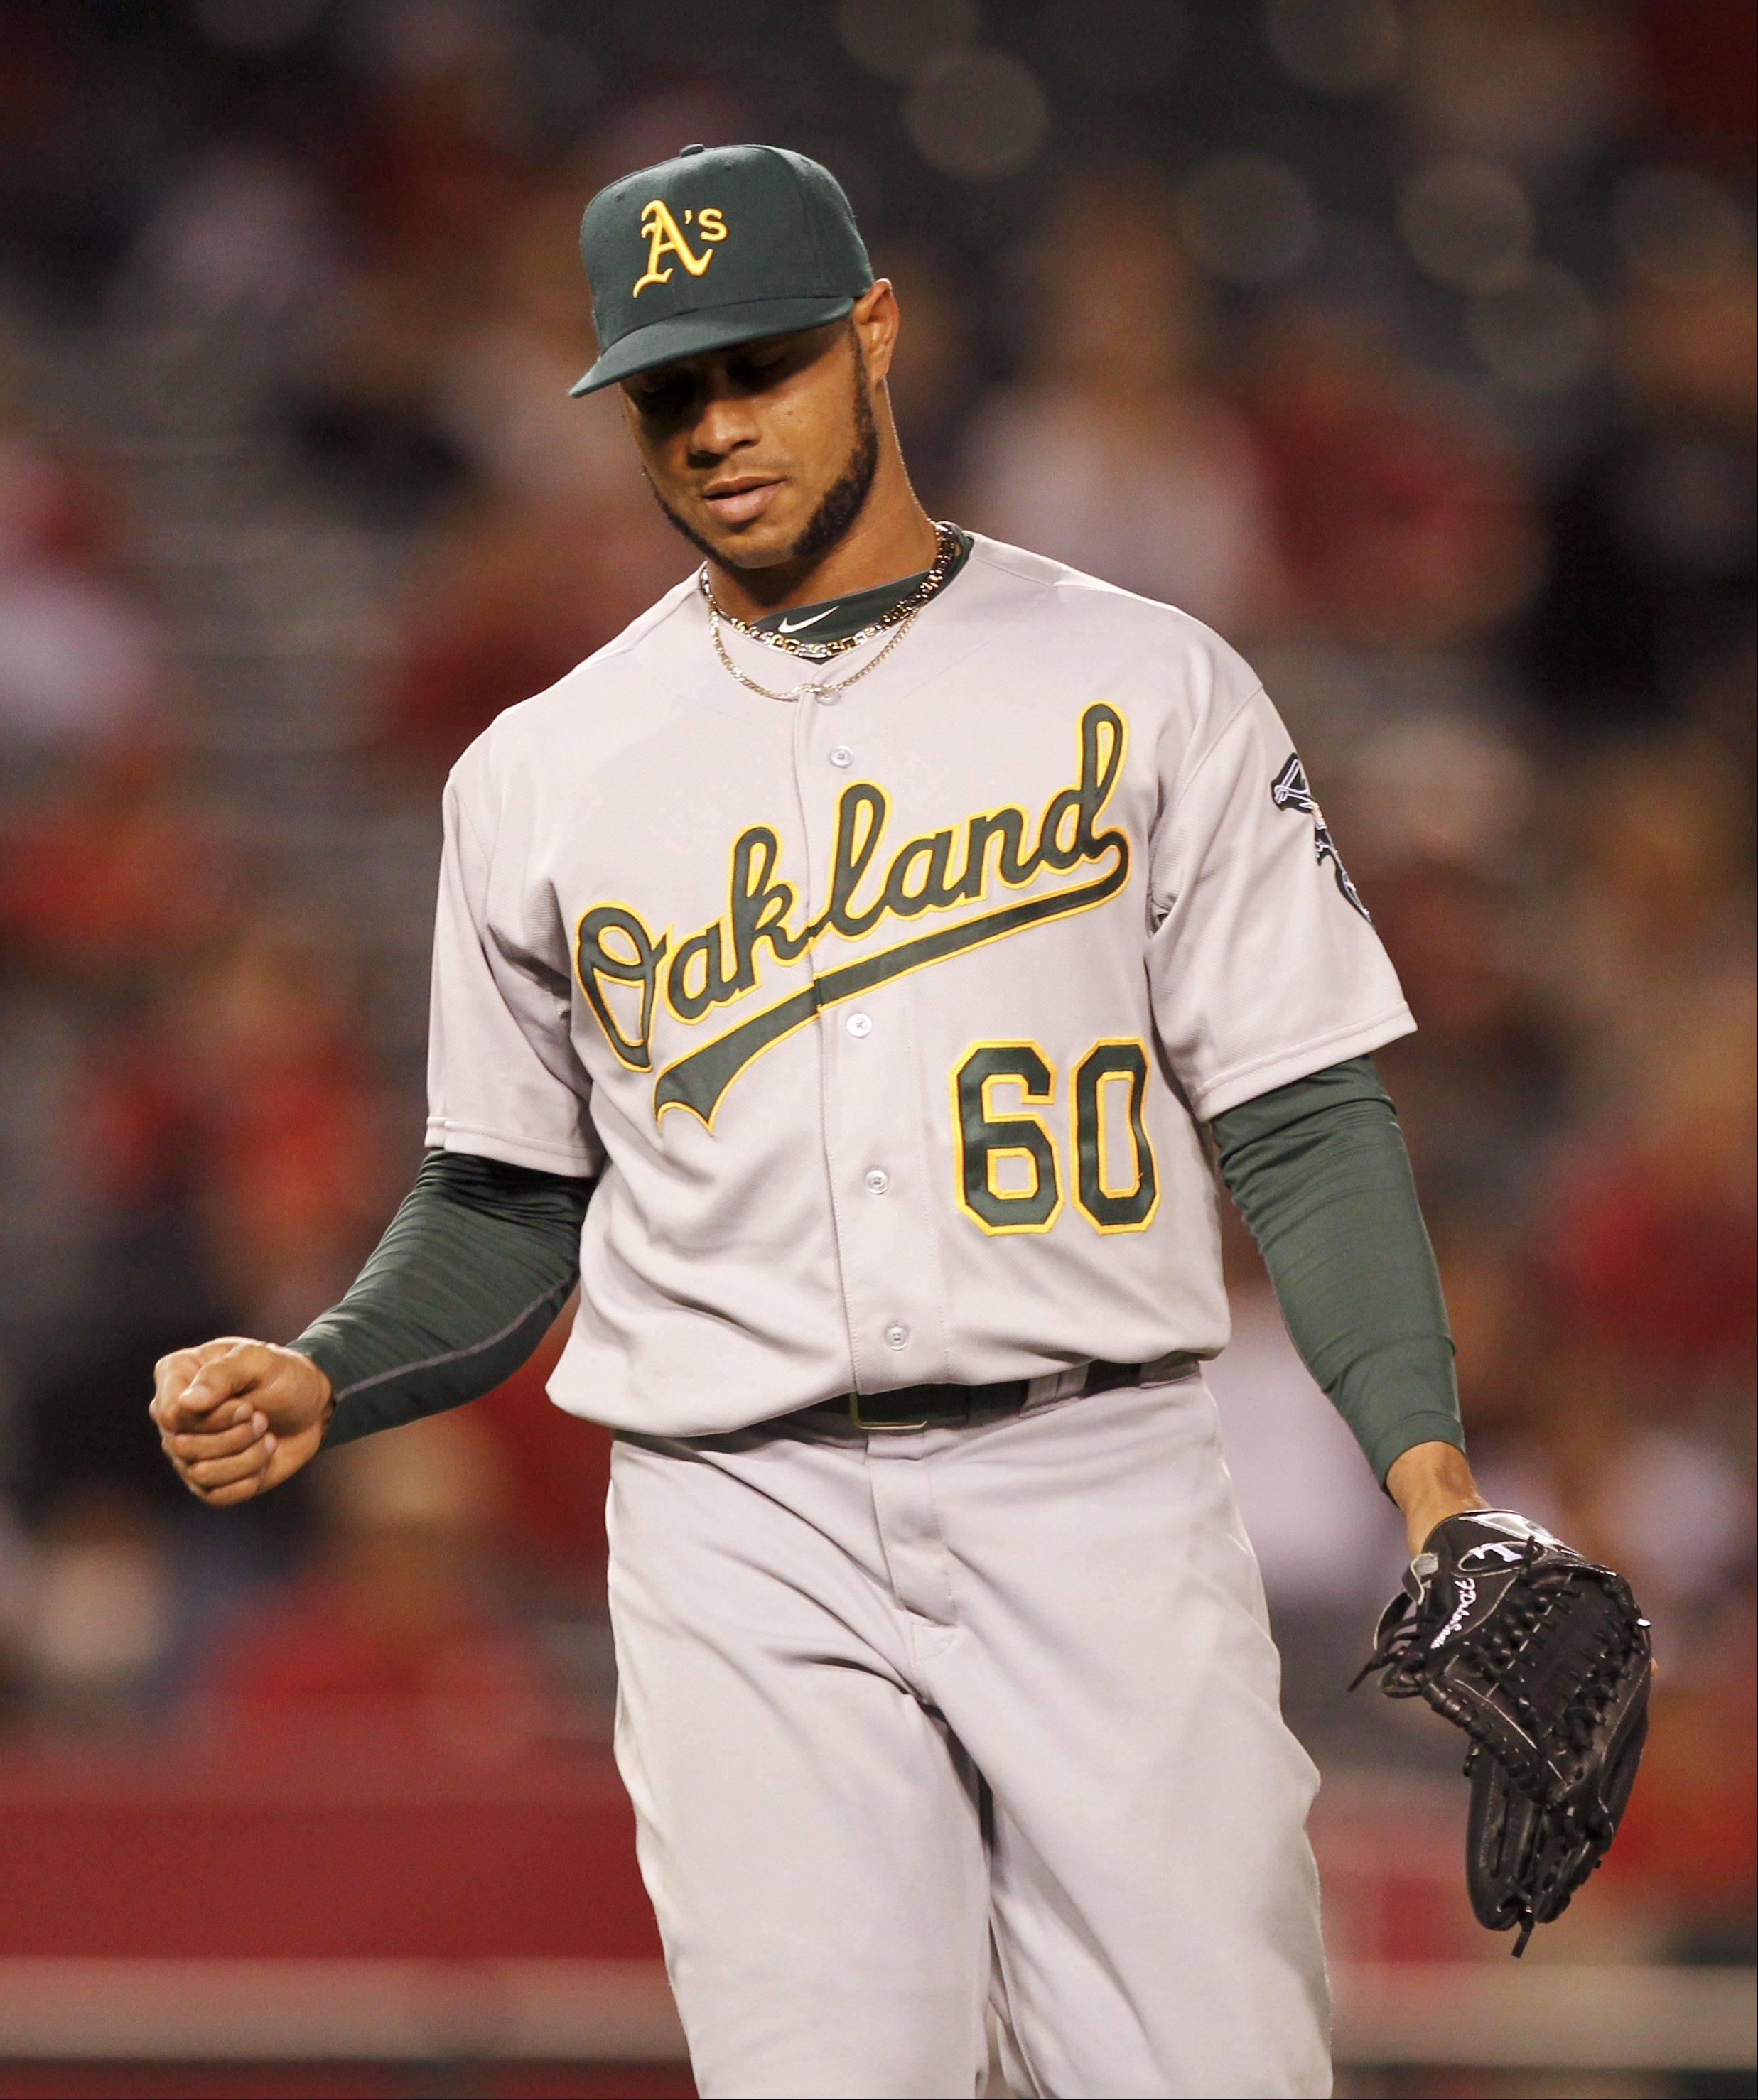 Former Oakland Athletics relief pitcher Fautino De Los Santos was claimed off waivers by San Diego on Feb. 6. The 27-year-old was optioned to Triple-A Tucson (PCL), he went 0-1 with a 3.86 ERA in two relief appearances before he was released on May 15.